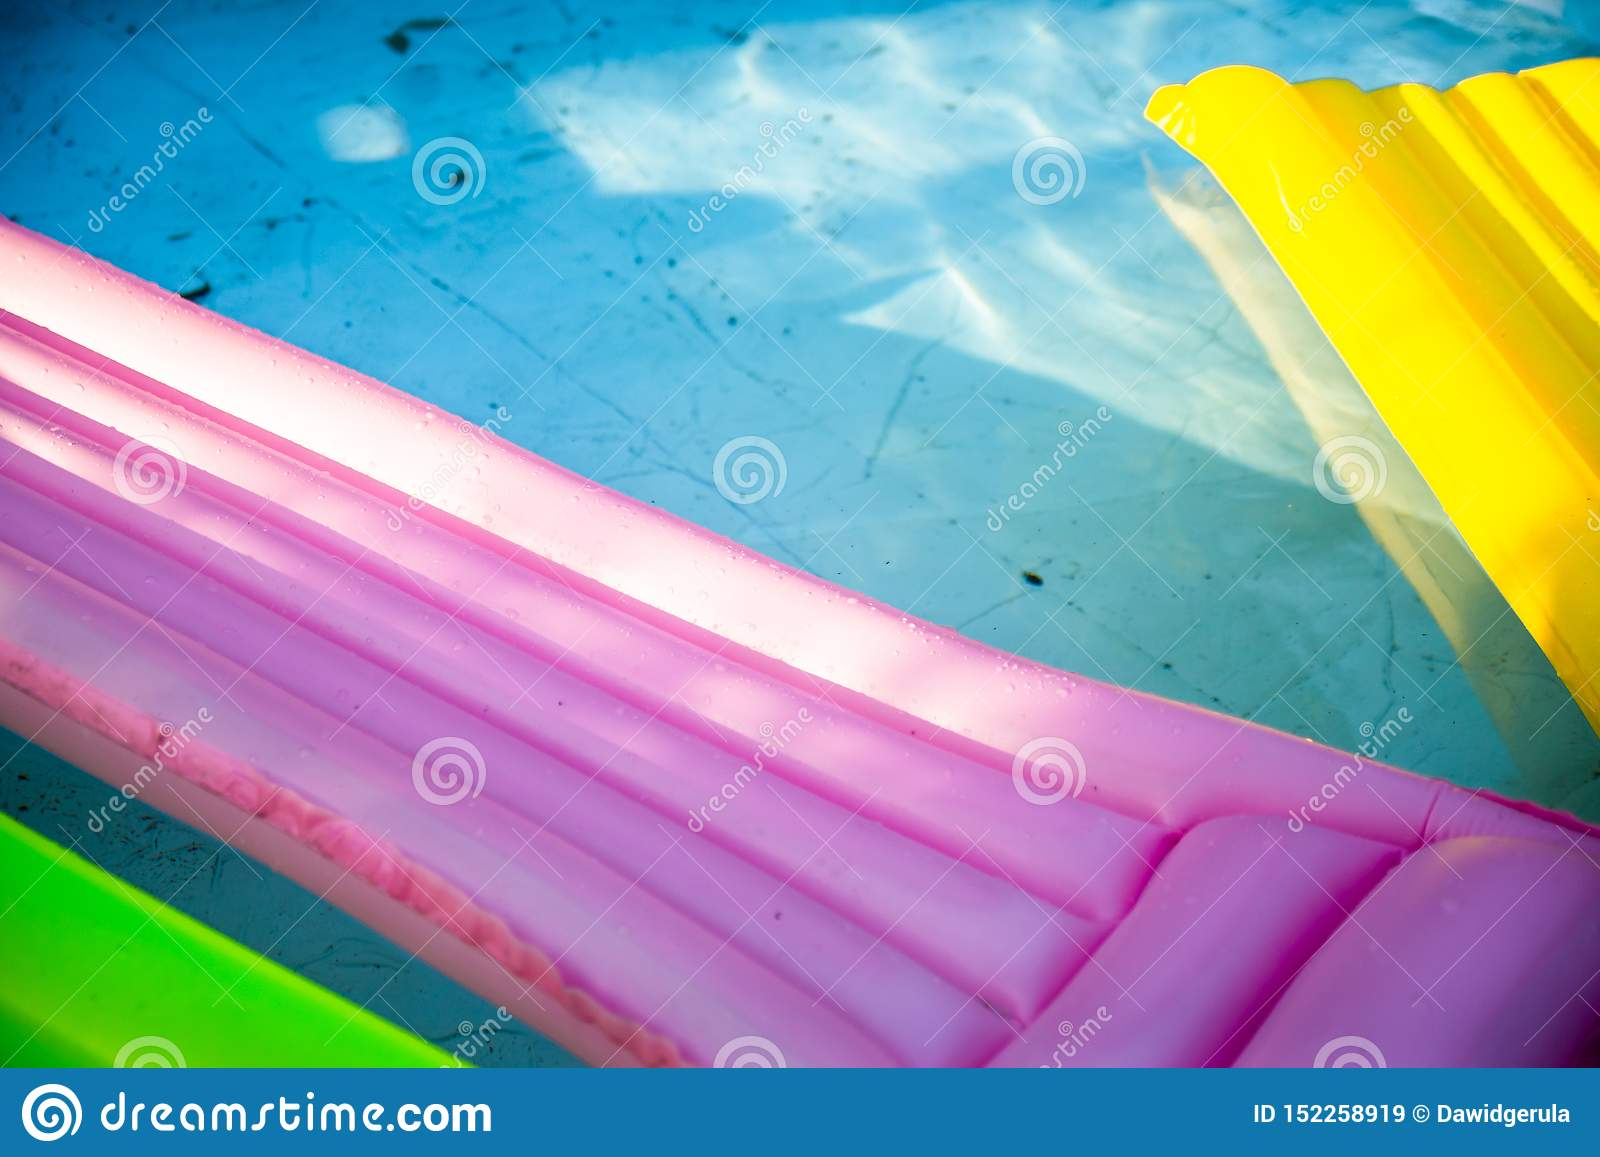 Colorful inflatable mattress in dirty swimming pool. Swimming pool with dirt and leaves on the bottom